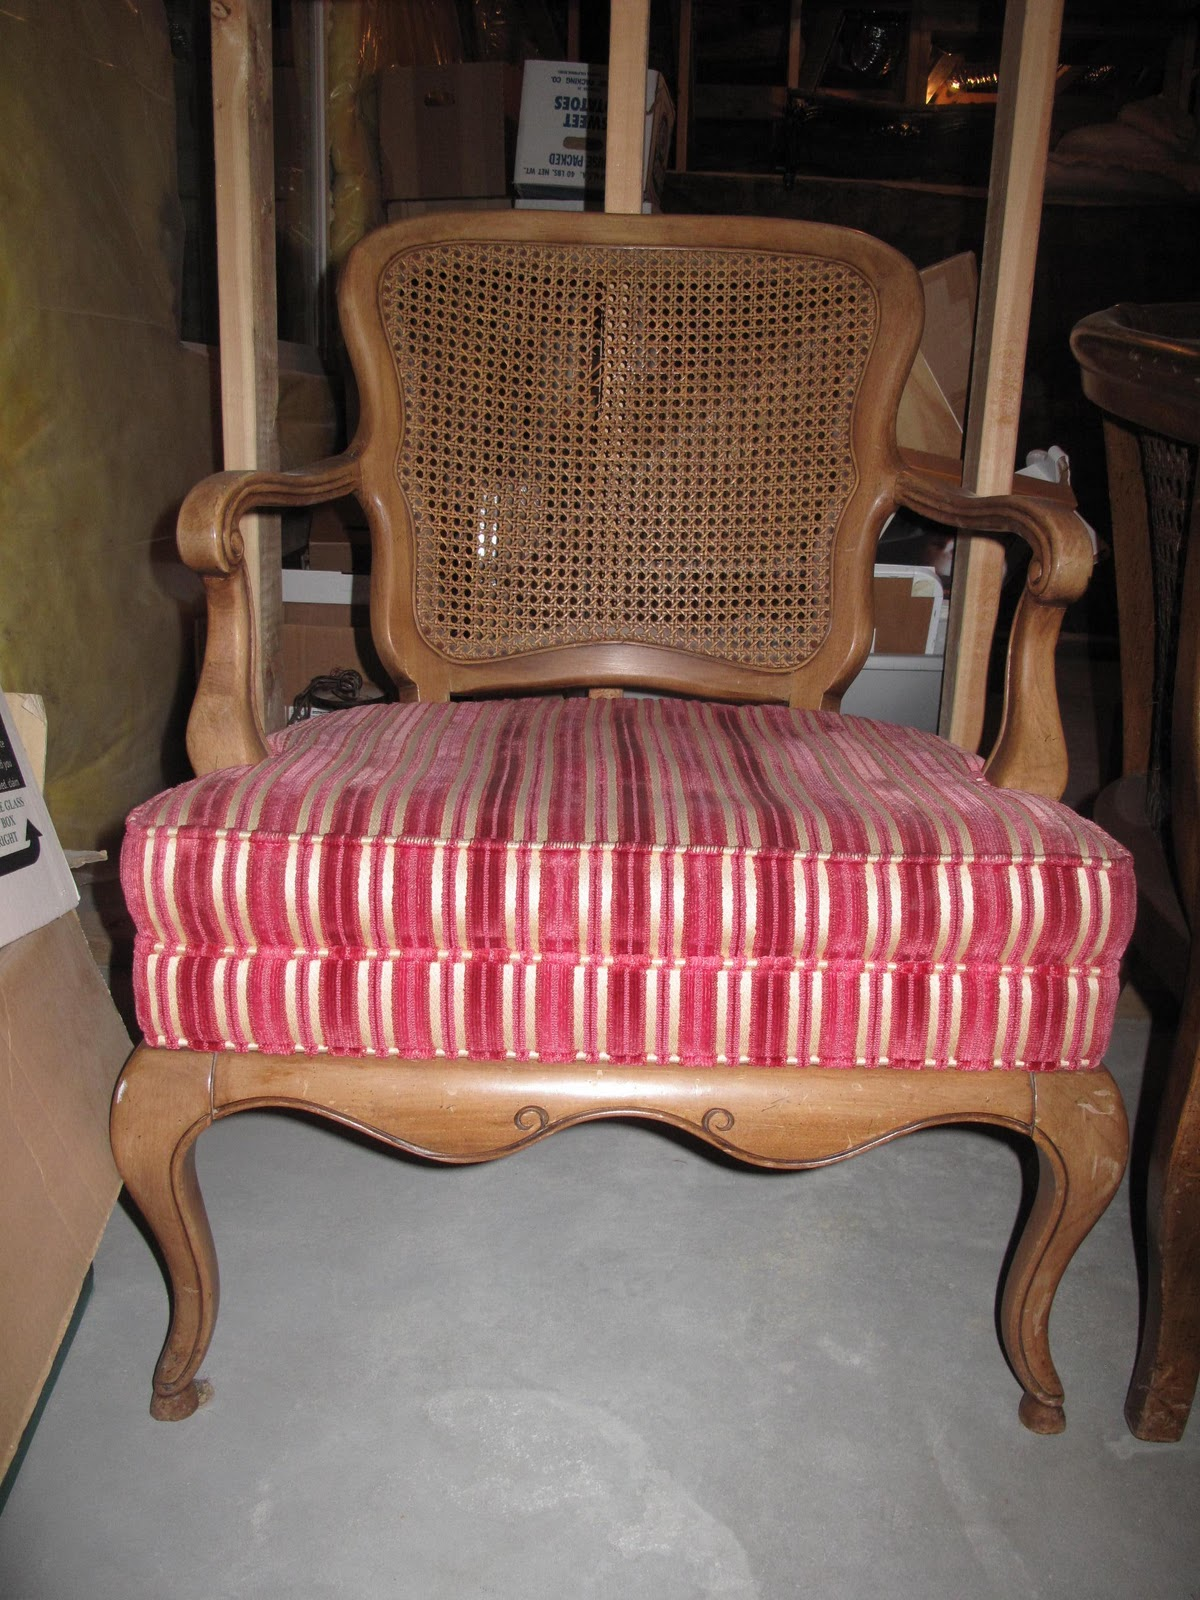 The Love Chair Chairs That Help You Stand Up Fridays For Of 7 Our Fifth House